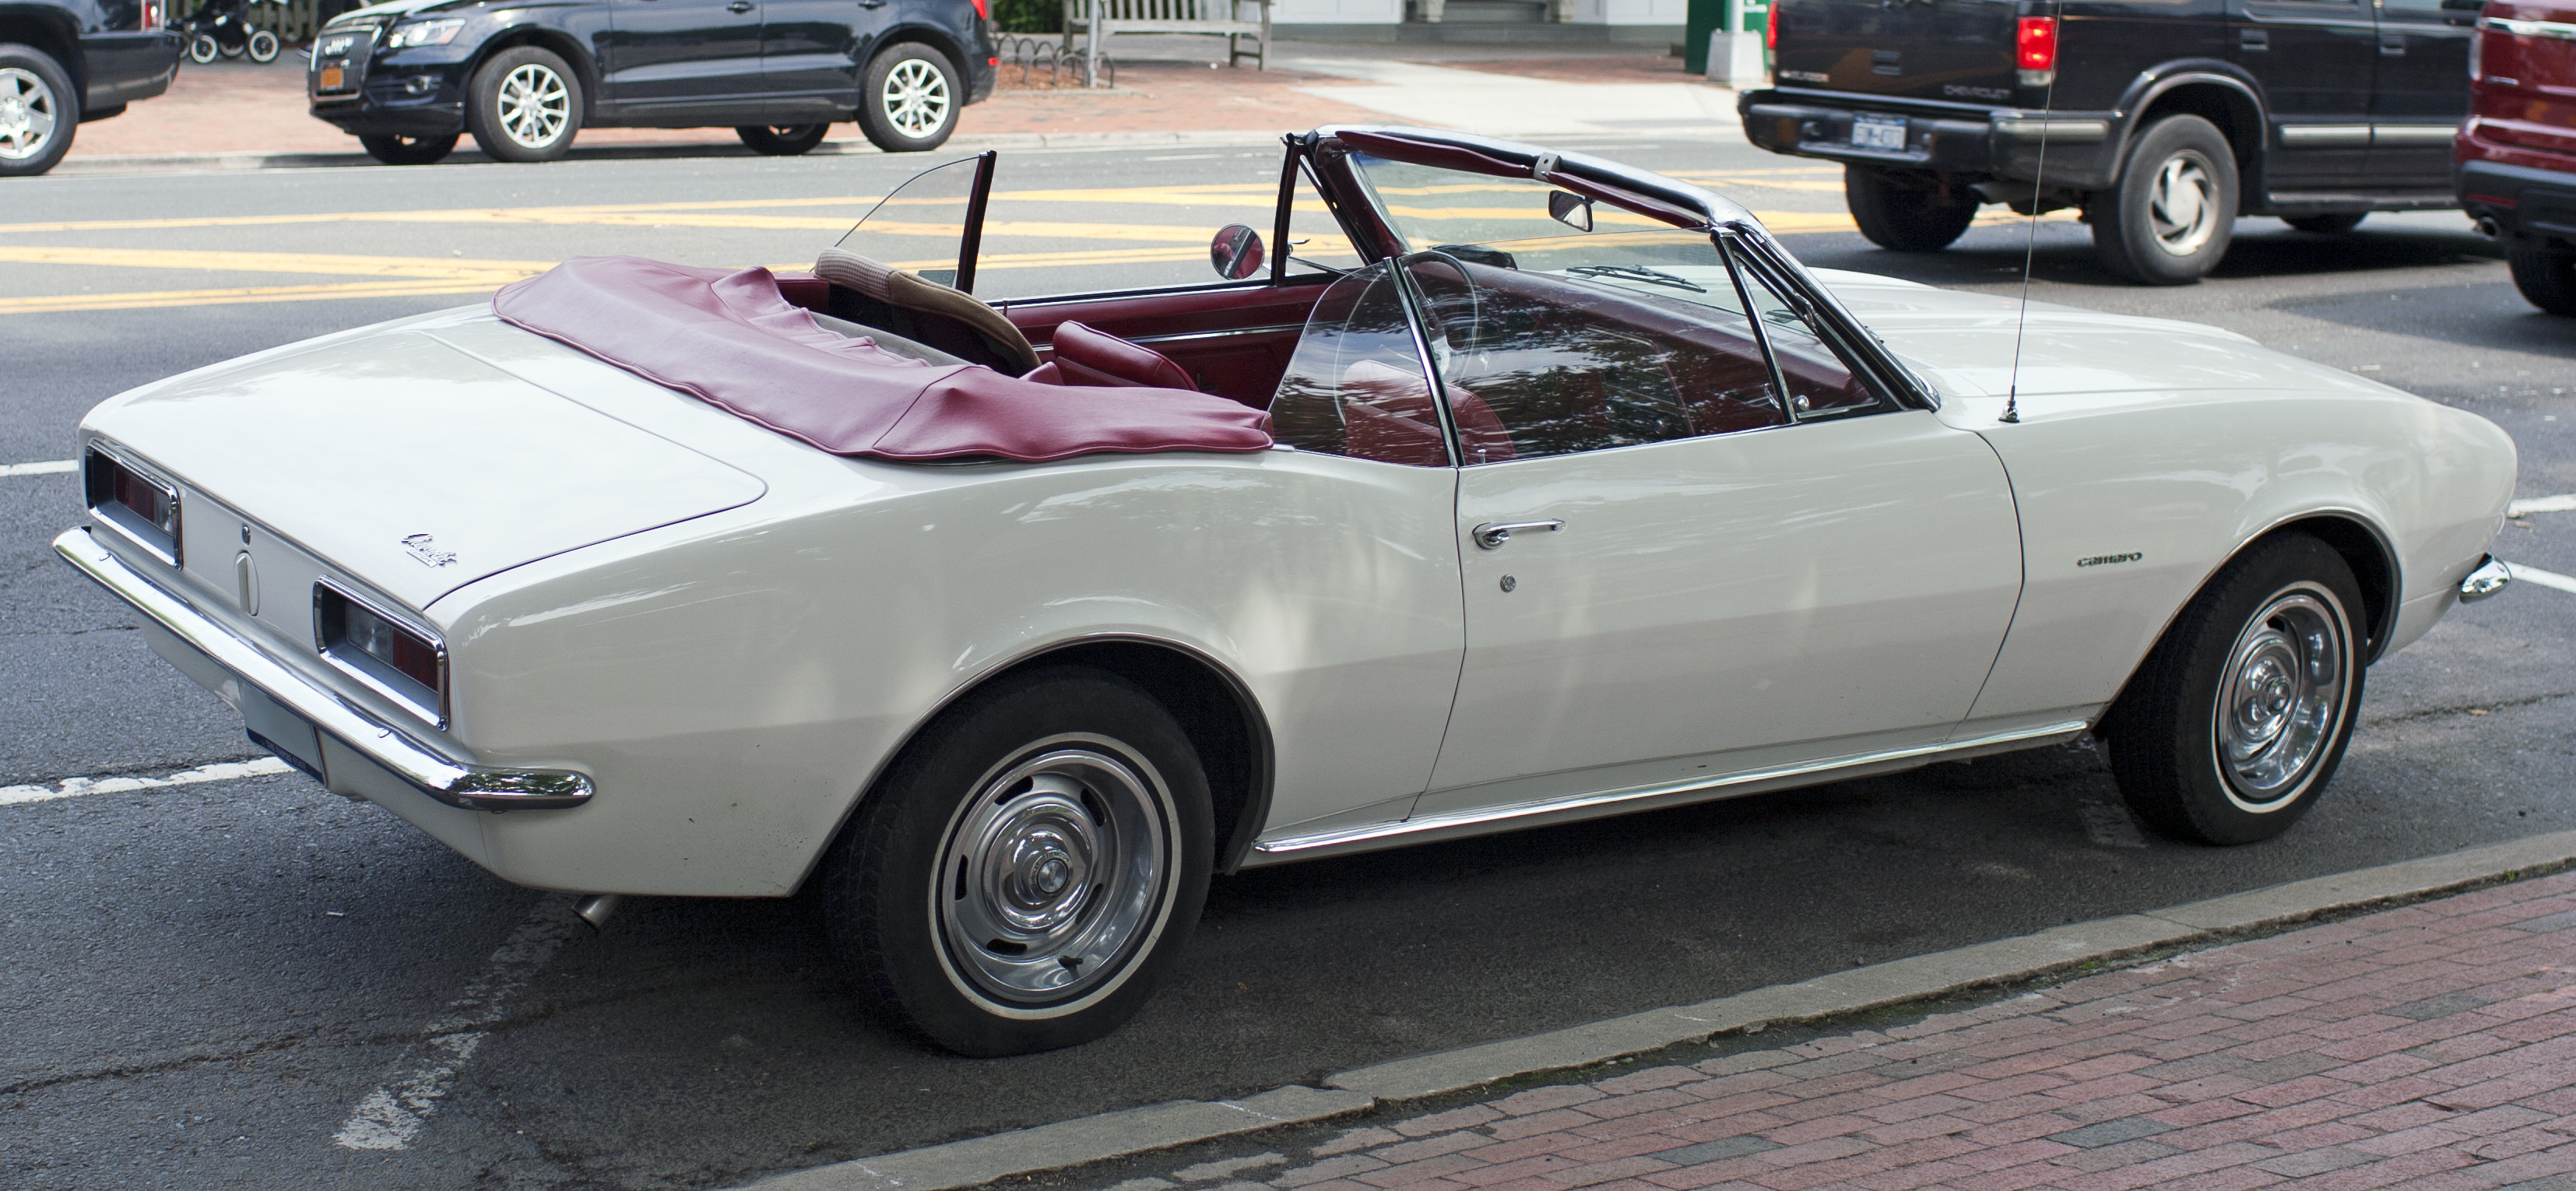 Stock 1967 Camaro Convertible with the base 6 cyl engine